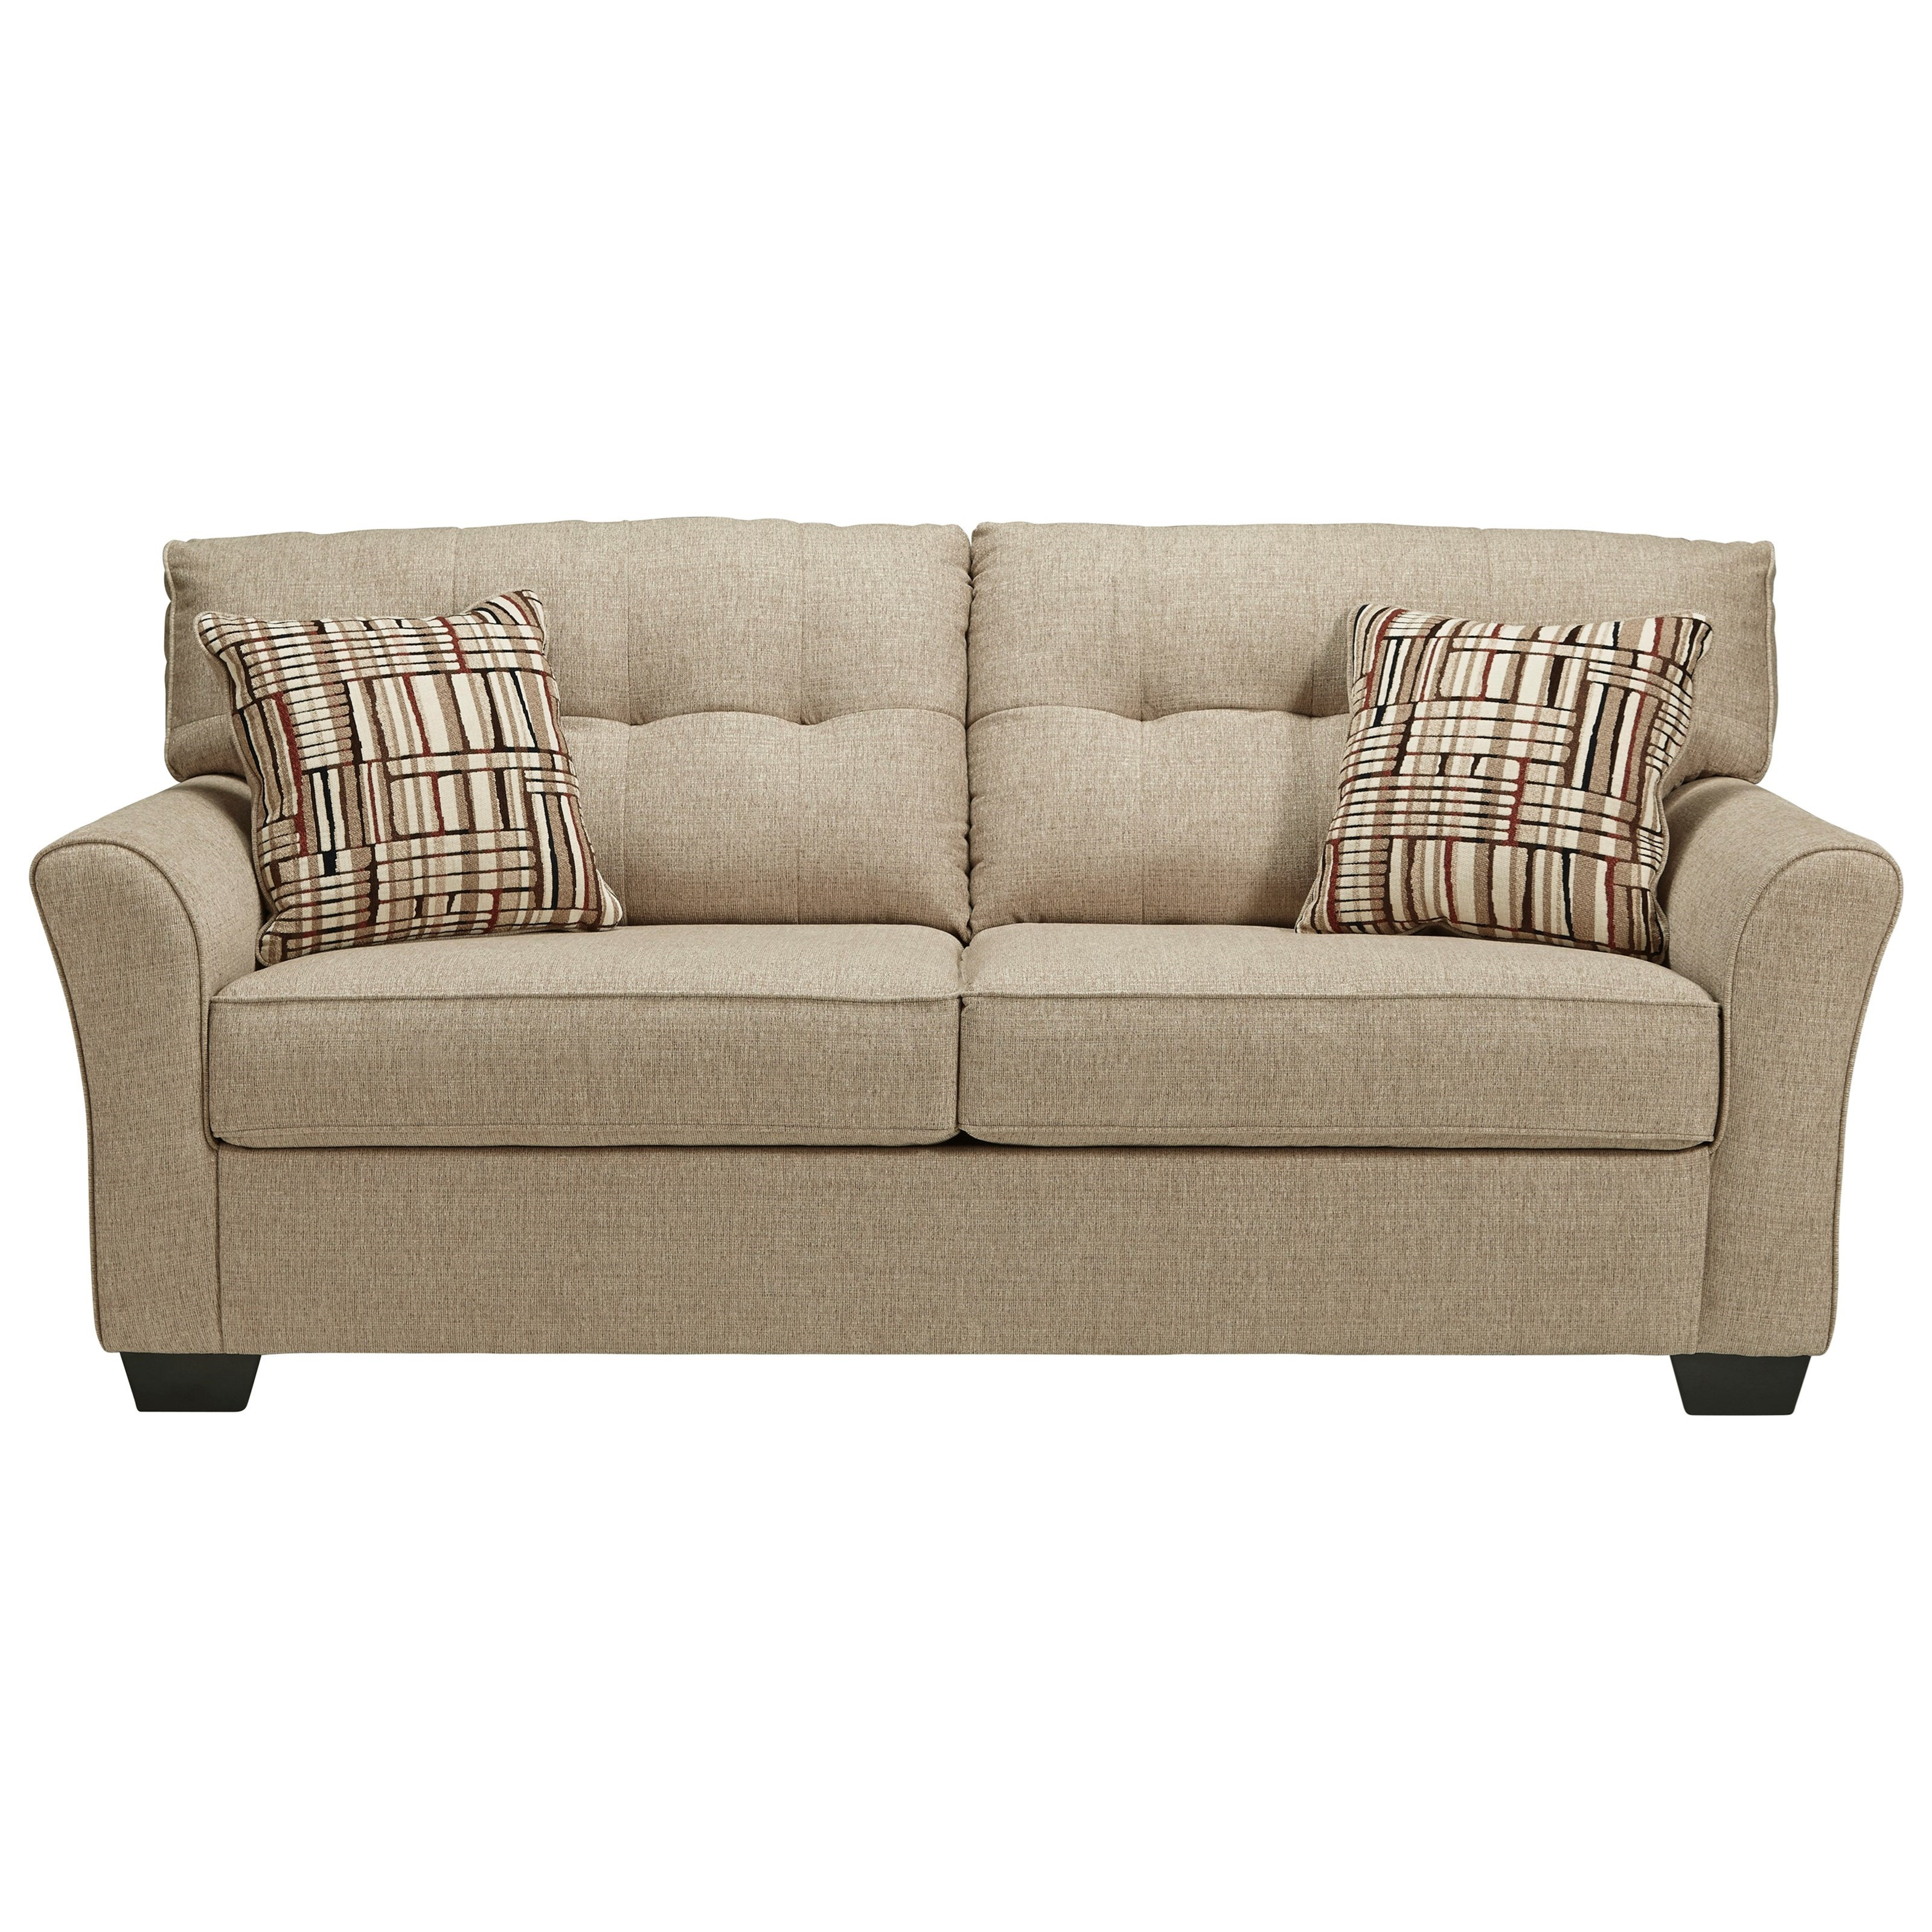 Ardmead Sofa by Benchcraft at Zak's Warehouse Clearance Center